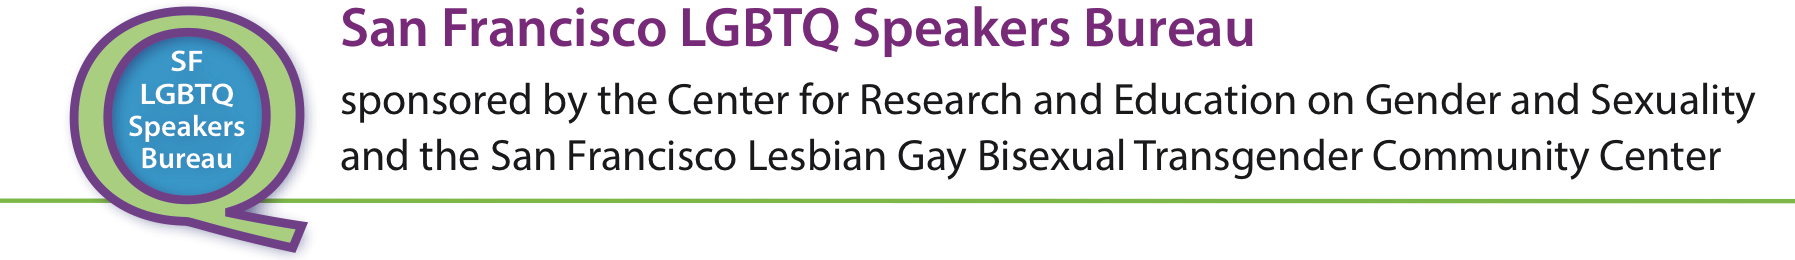 SF LGBT Speakers Bureau